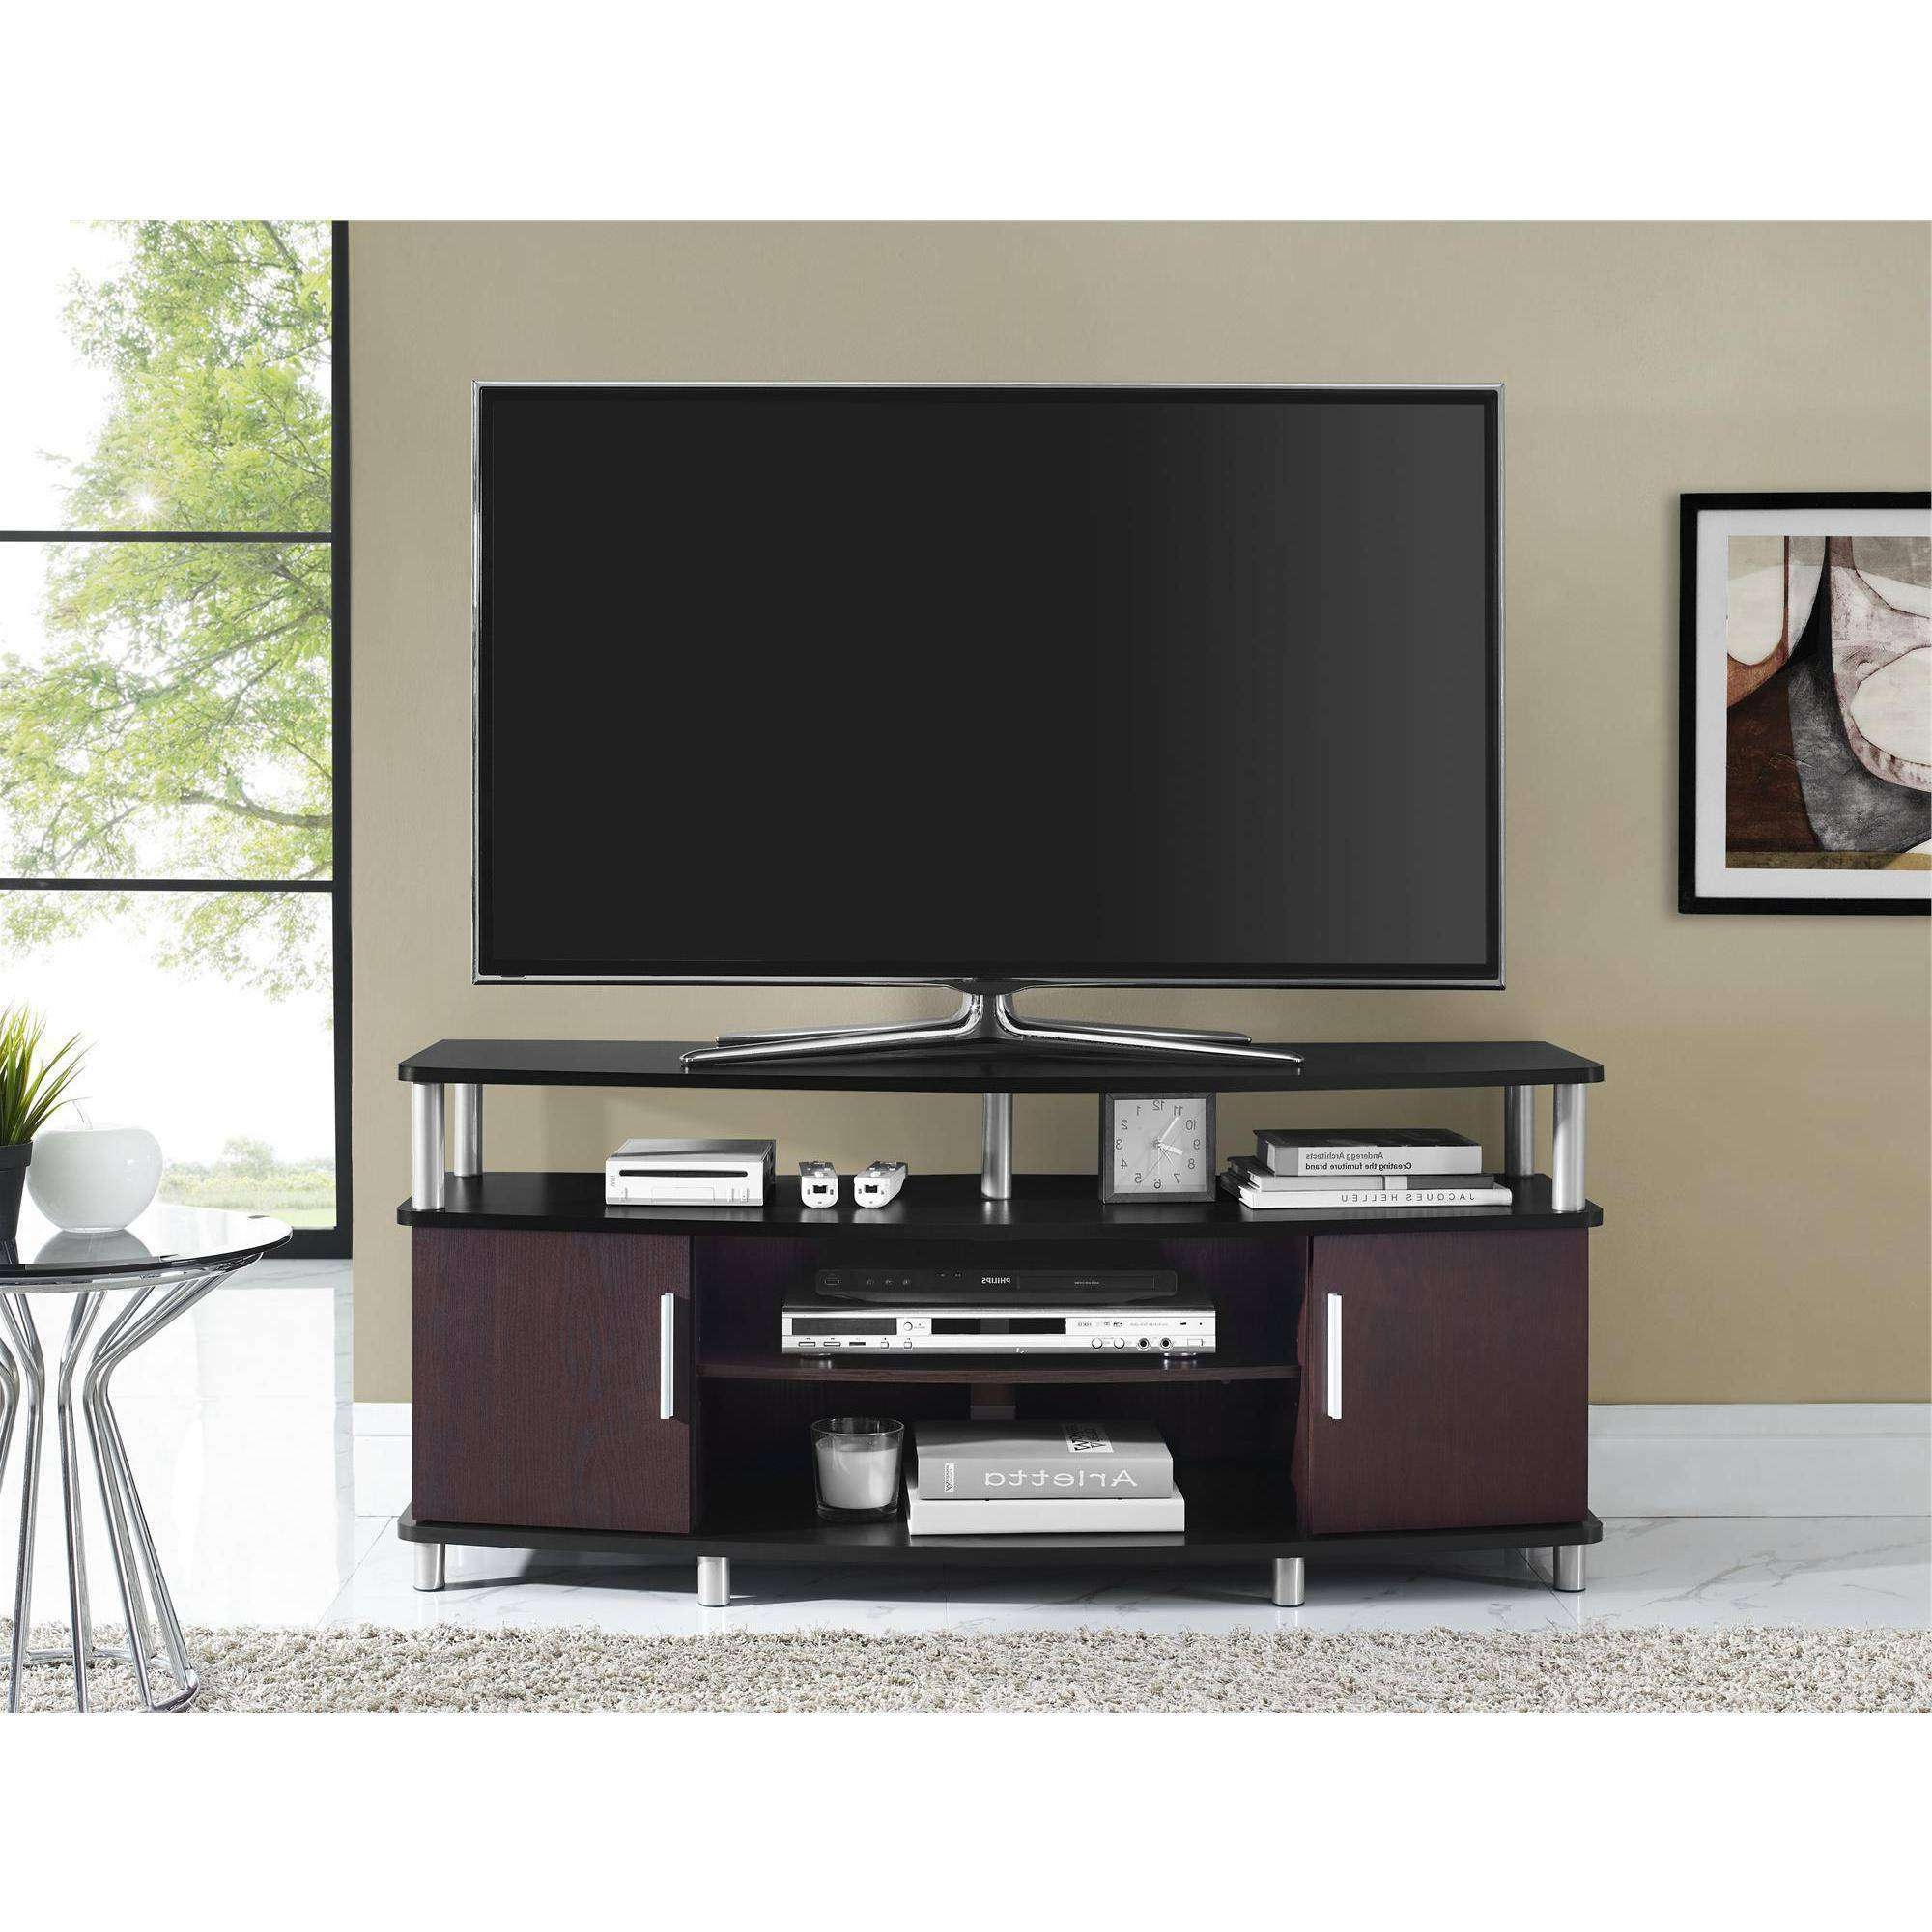 Flat Screen Tv Stands With Mount Furnitures Modern For Inch In Modern Tv Stands For Flat Screens (View 10 of 15)